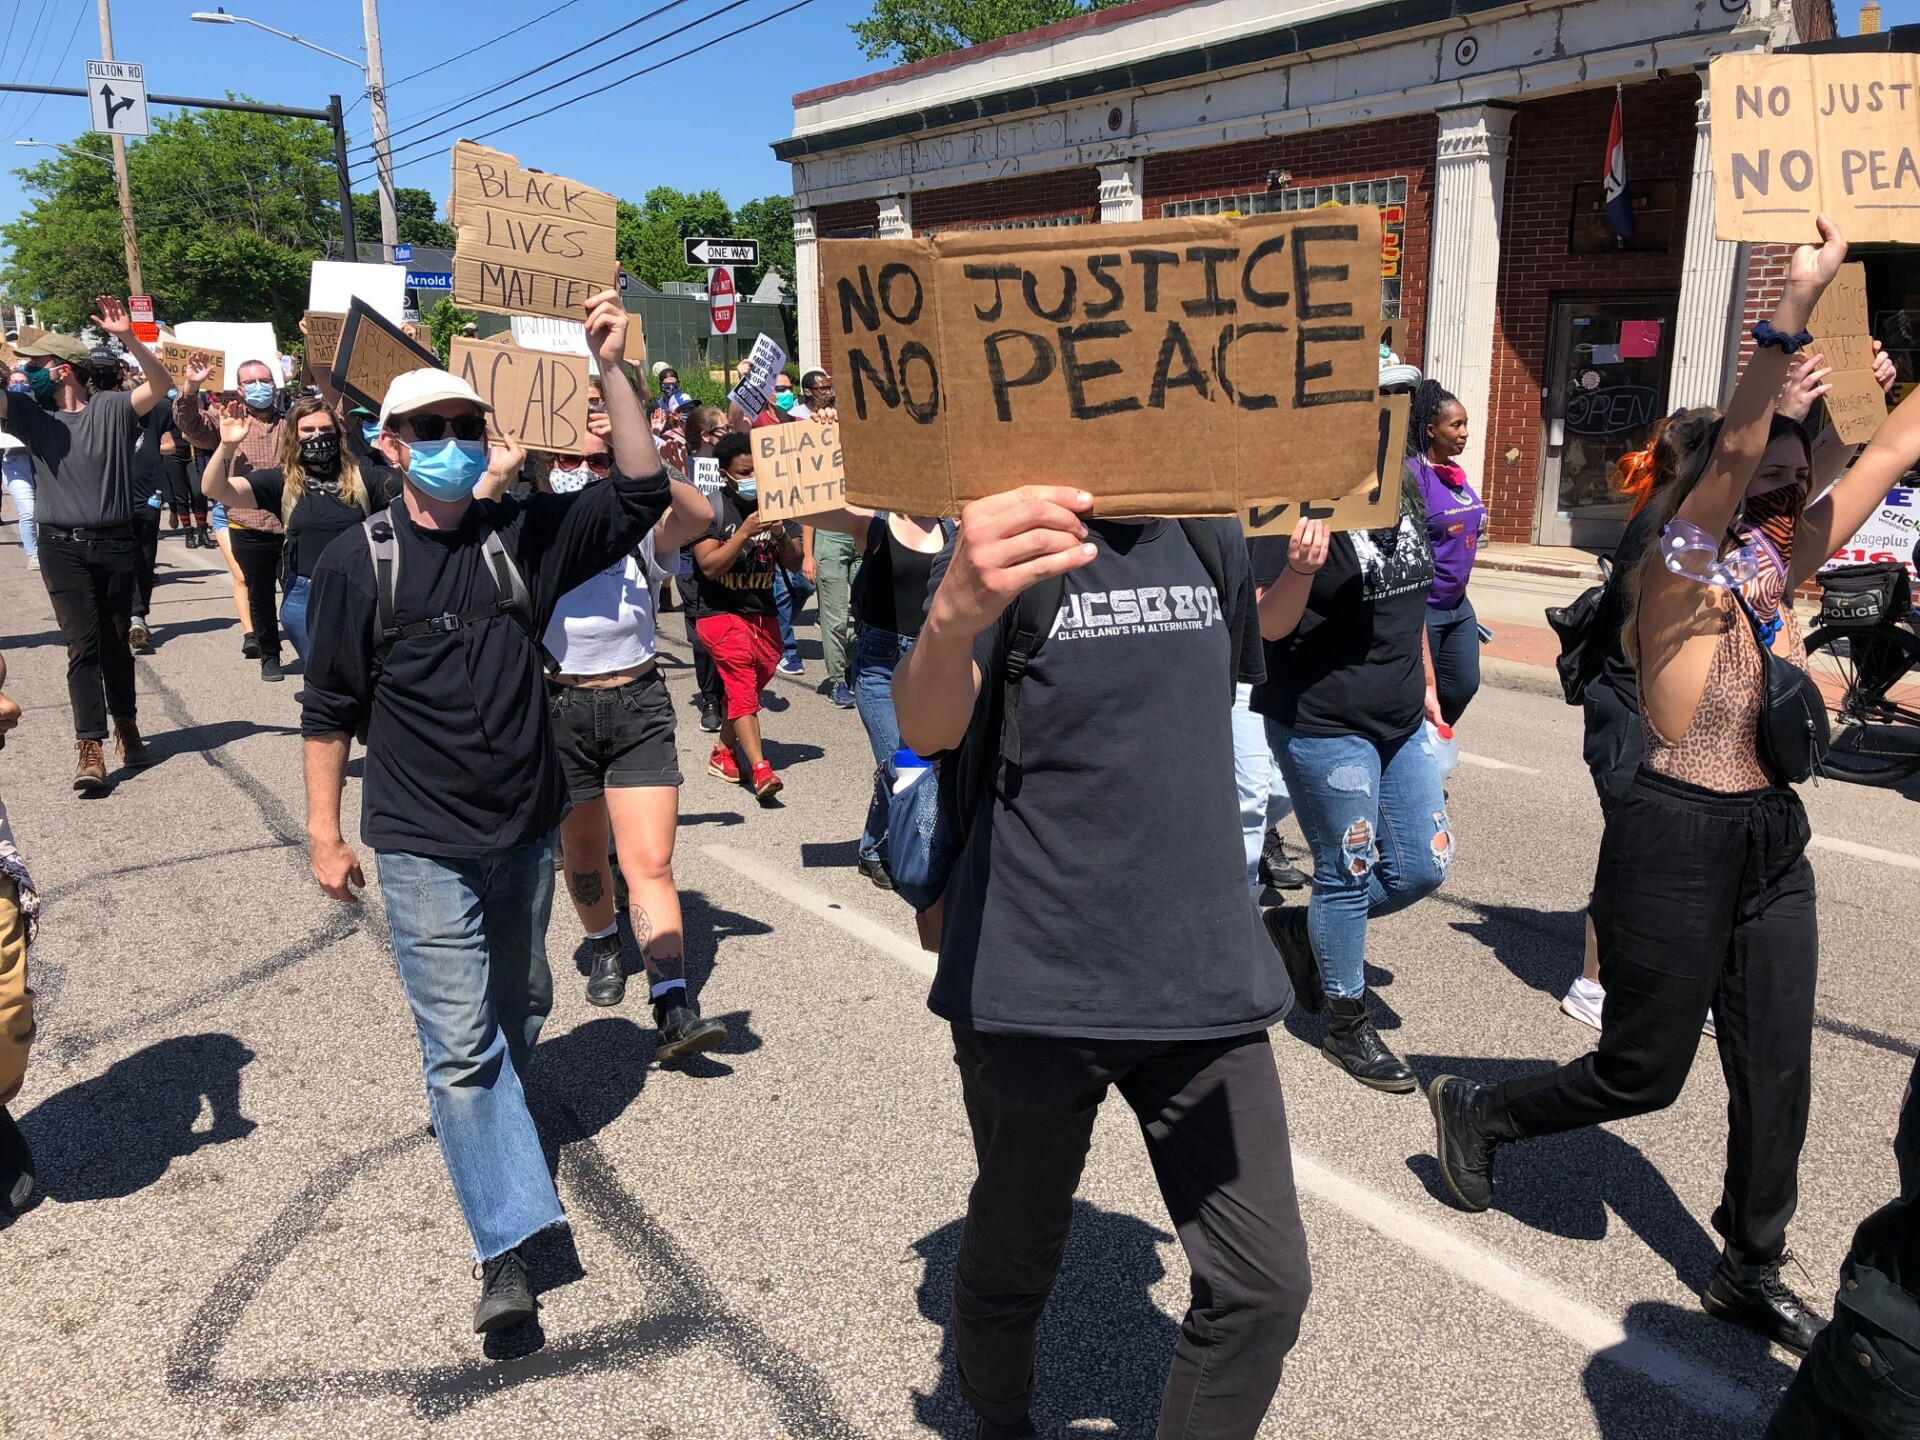 Cleveland Racial Injustice Protest_7088.jpg